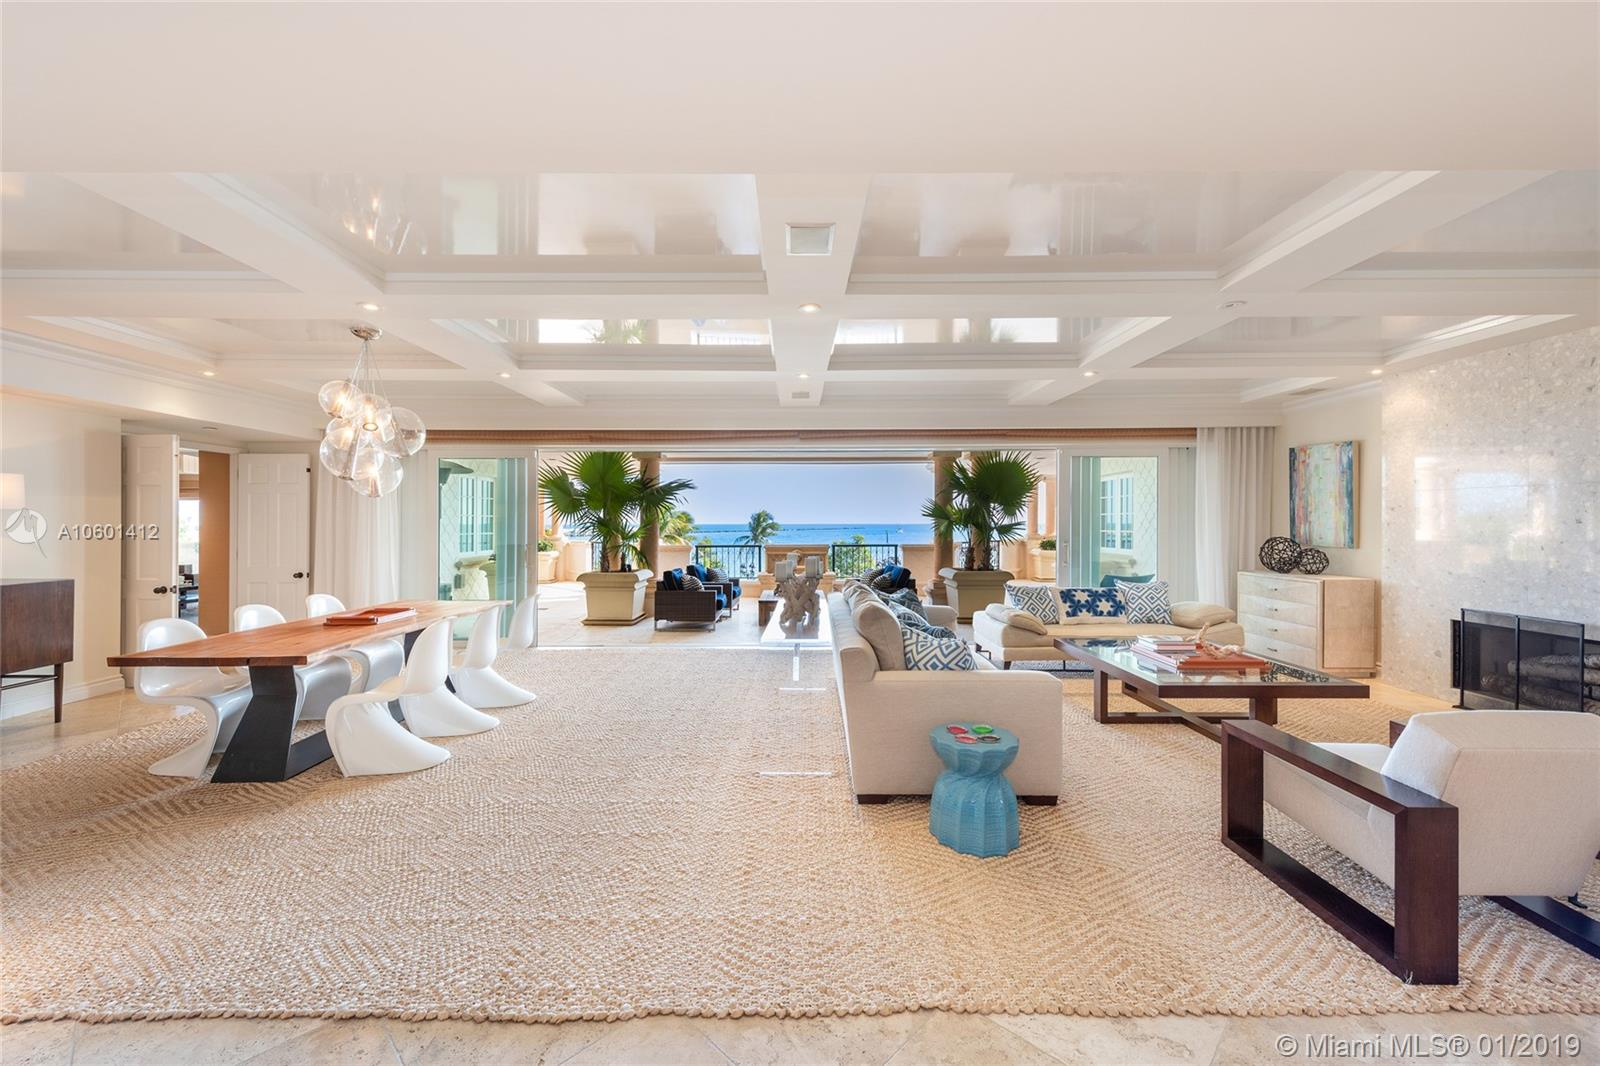 7223 Fisher Island Dr, Unit #7223 Luxury Real Estate